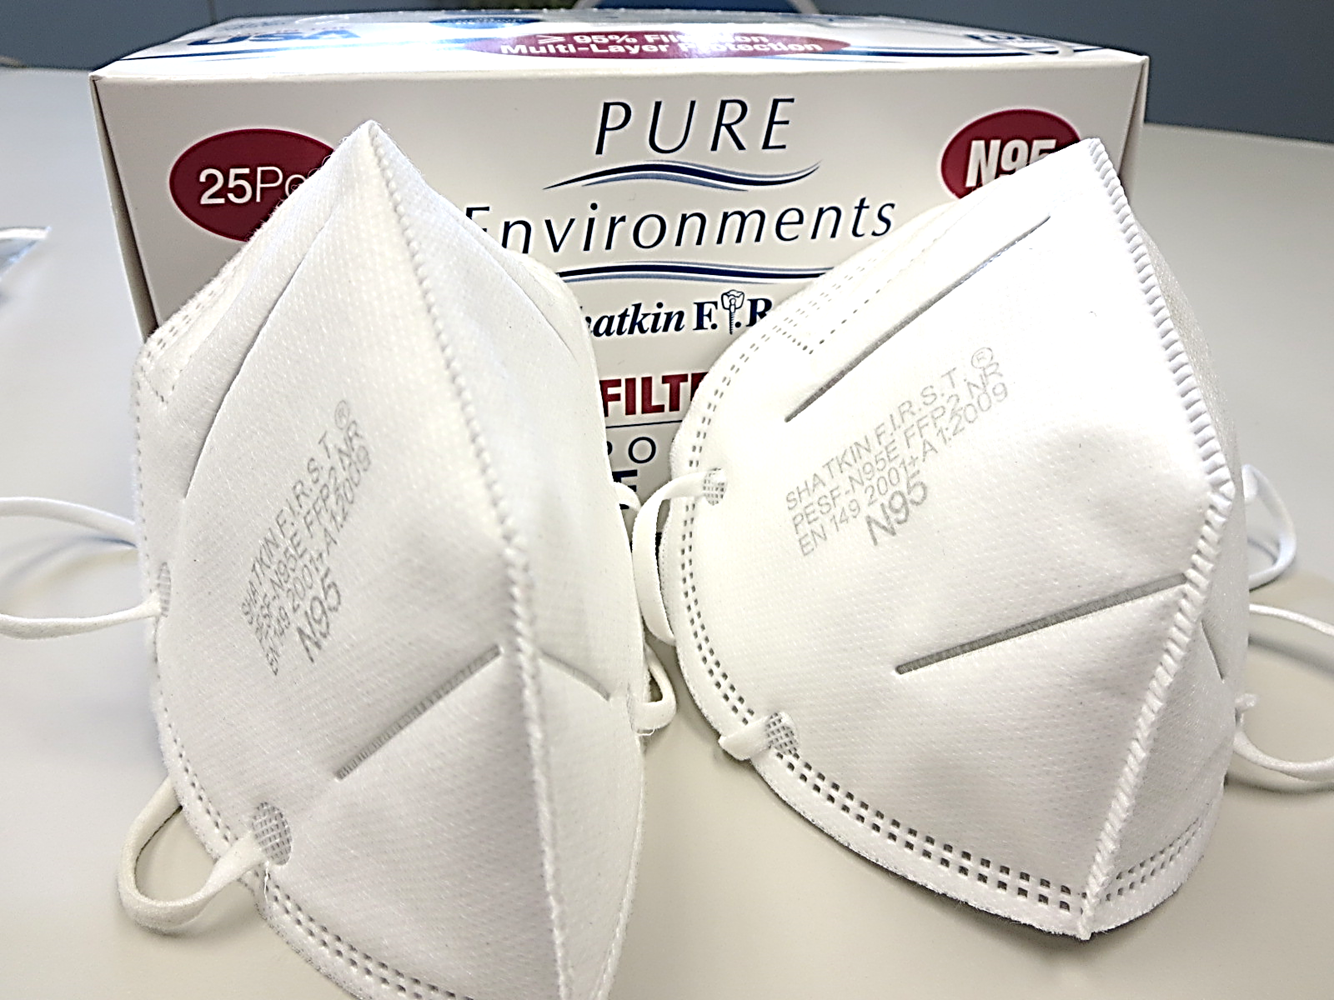 Shatkin First #SFN95H Pure Environments N95 Disposable Face Mask Respirators